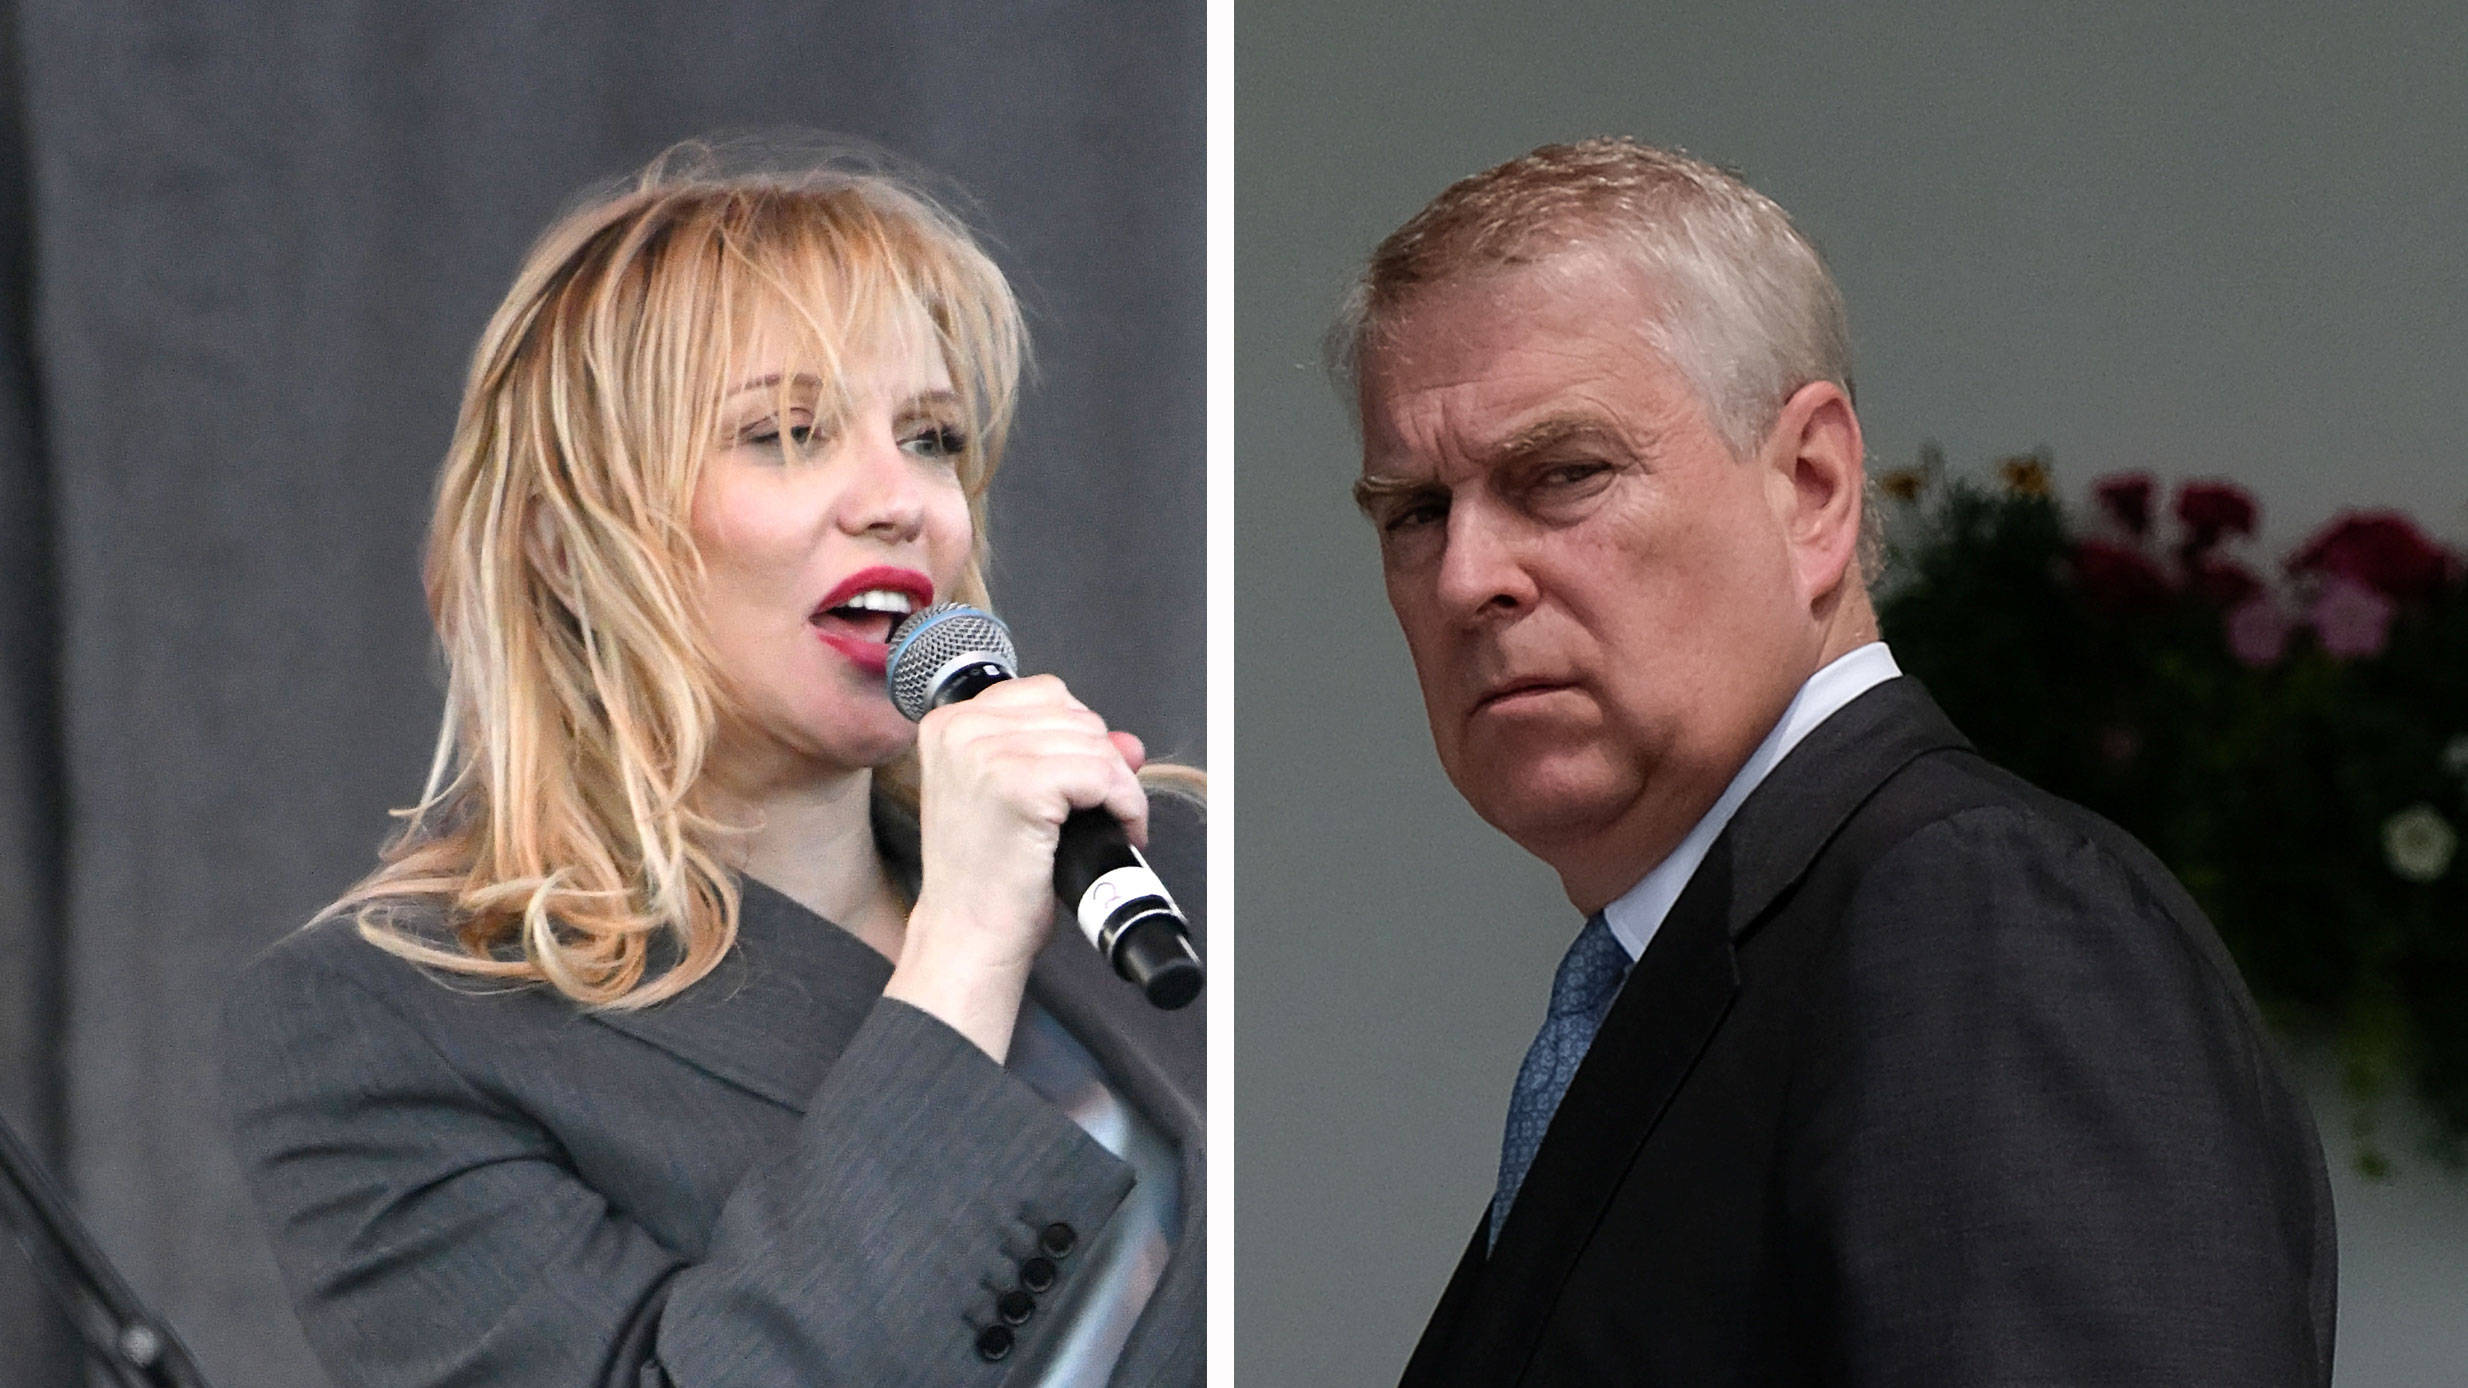 Courtney Love denies Prince Andrew turned up alone at her home at 1am